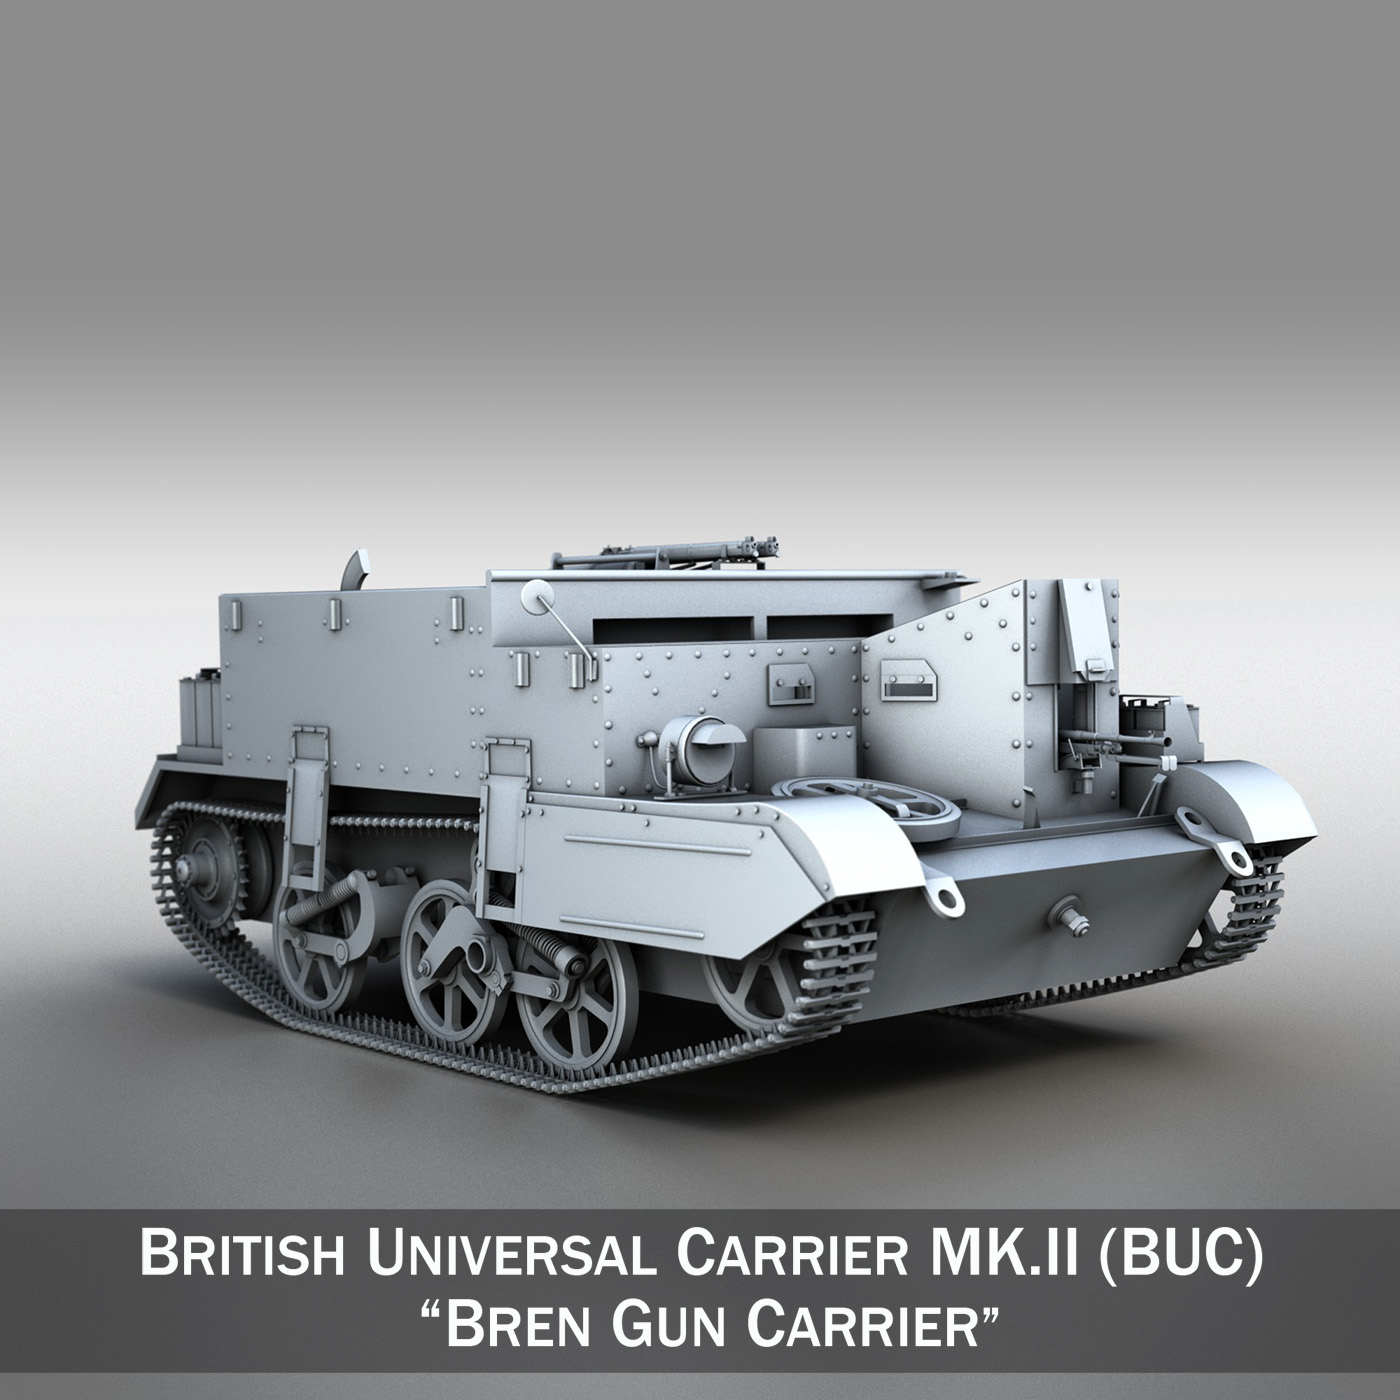 universal carrier mk ii – bren gun carrier 3d model 3ds fbx c4d lwo obj 272958